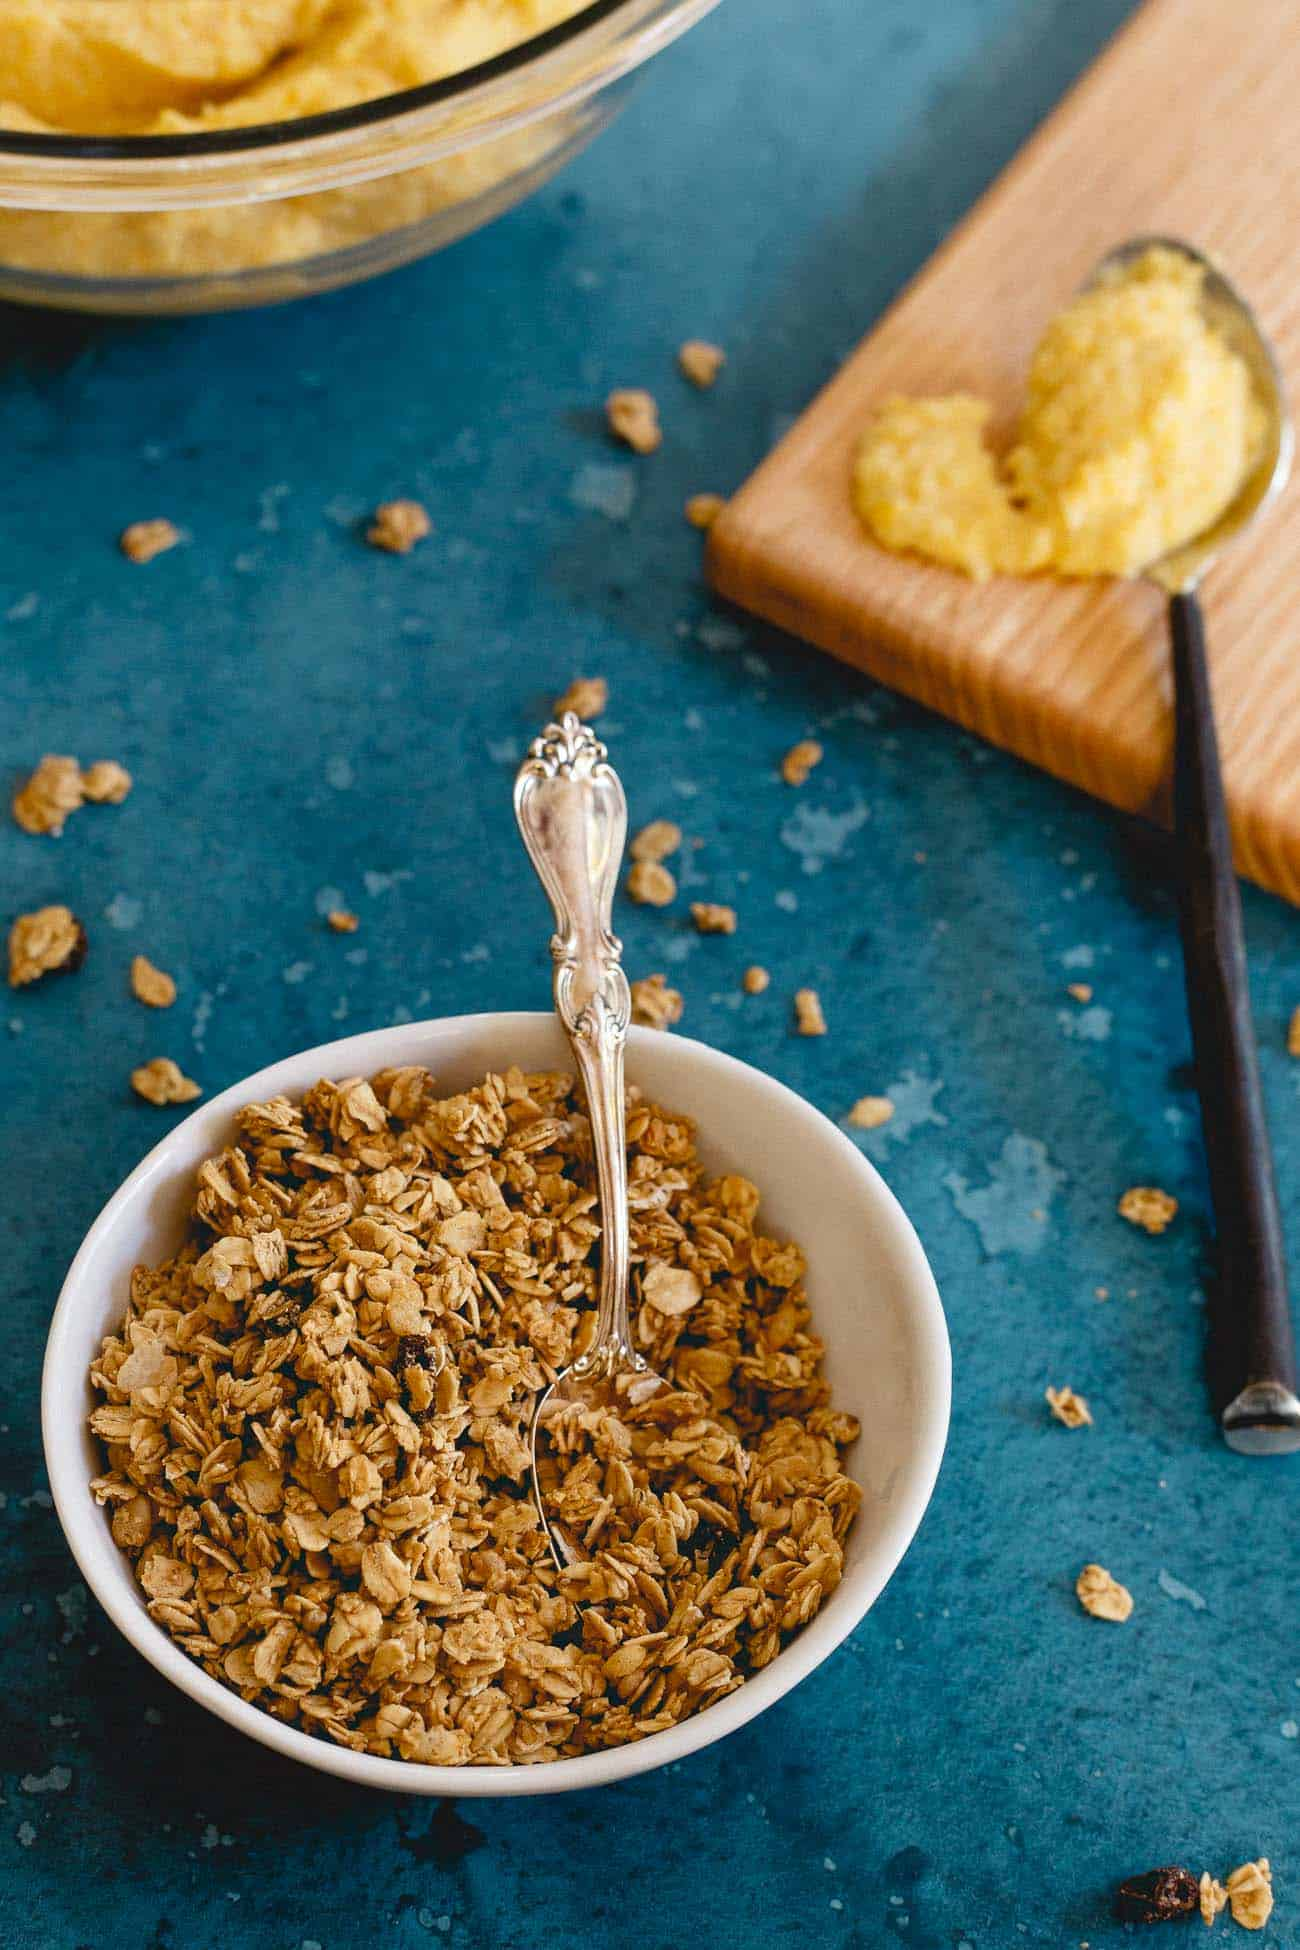 Gluten free vanilla granola tops this creamy cauliflower pumpkin mash for an added touch of sweetness and crunch.